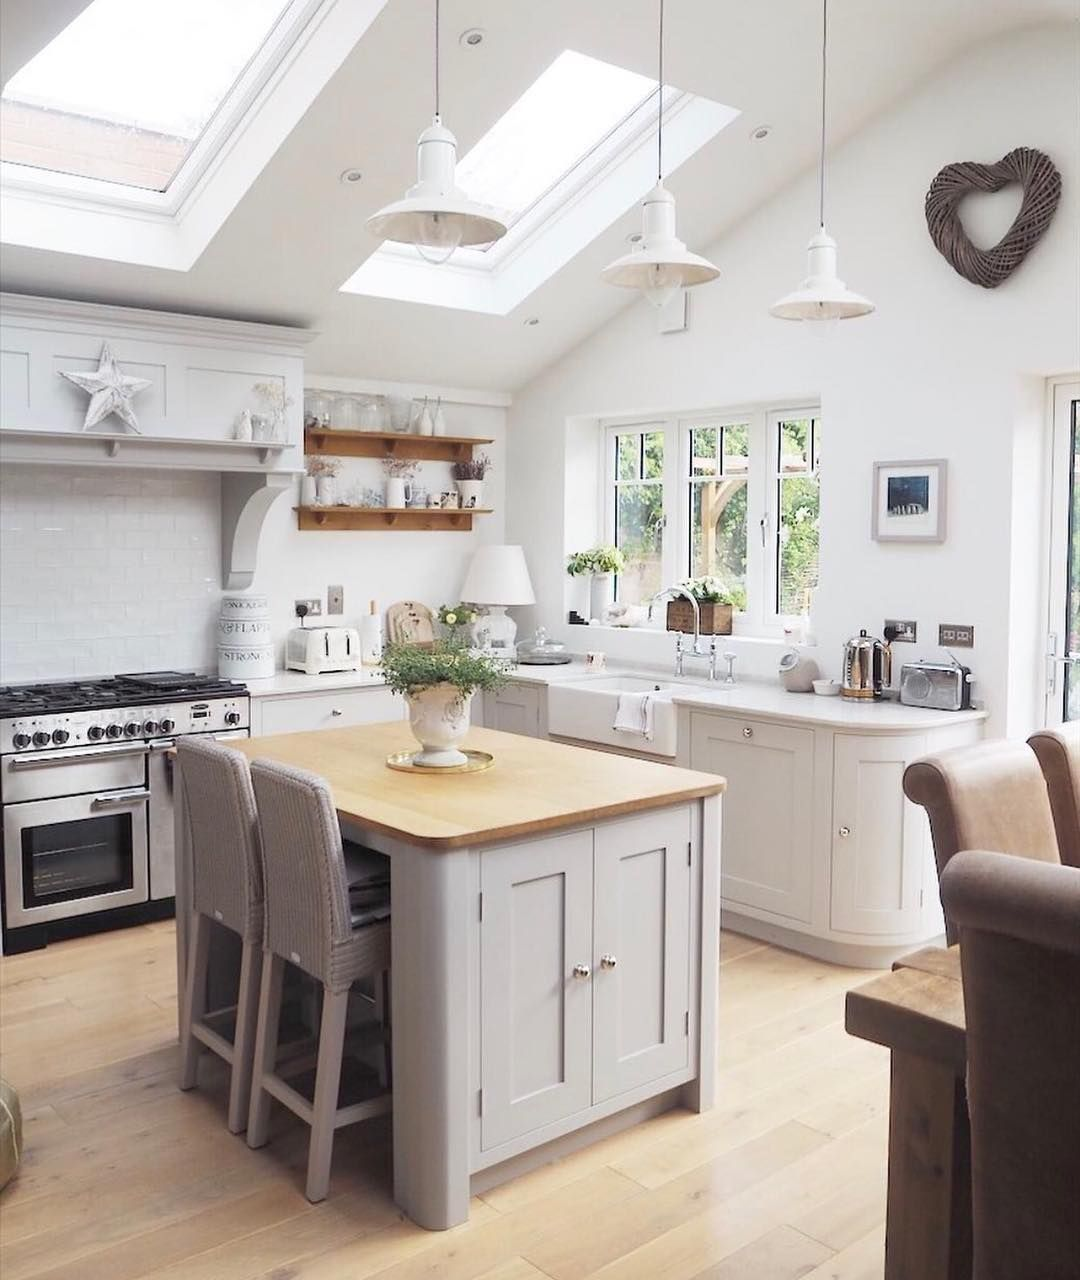 51 Small Kitchen Design Ideas That Make The Most Of A Tiny: Design Ideas Modern And Traditional Small Kitchen Island